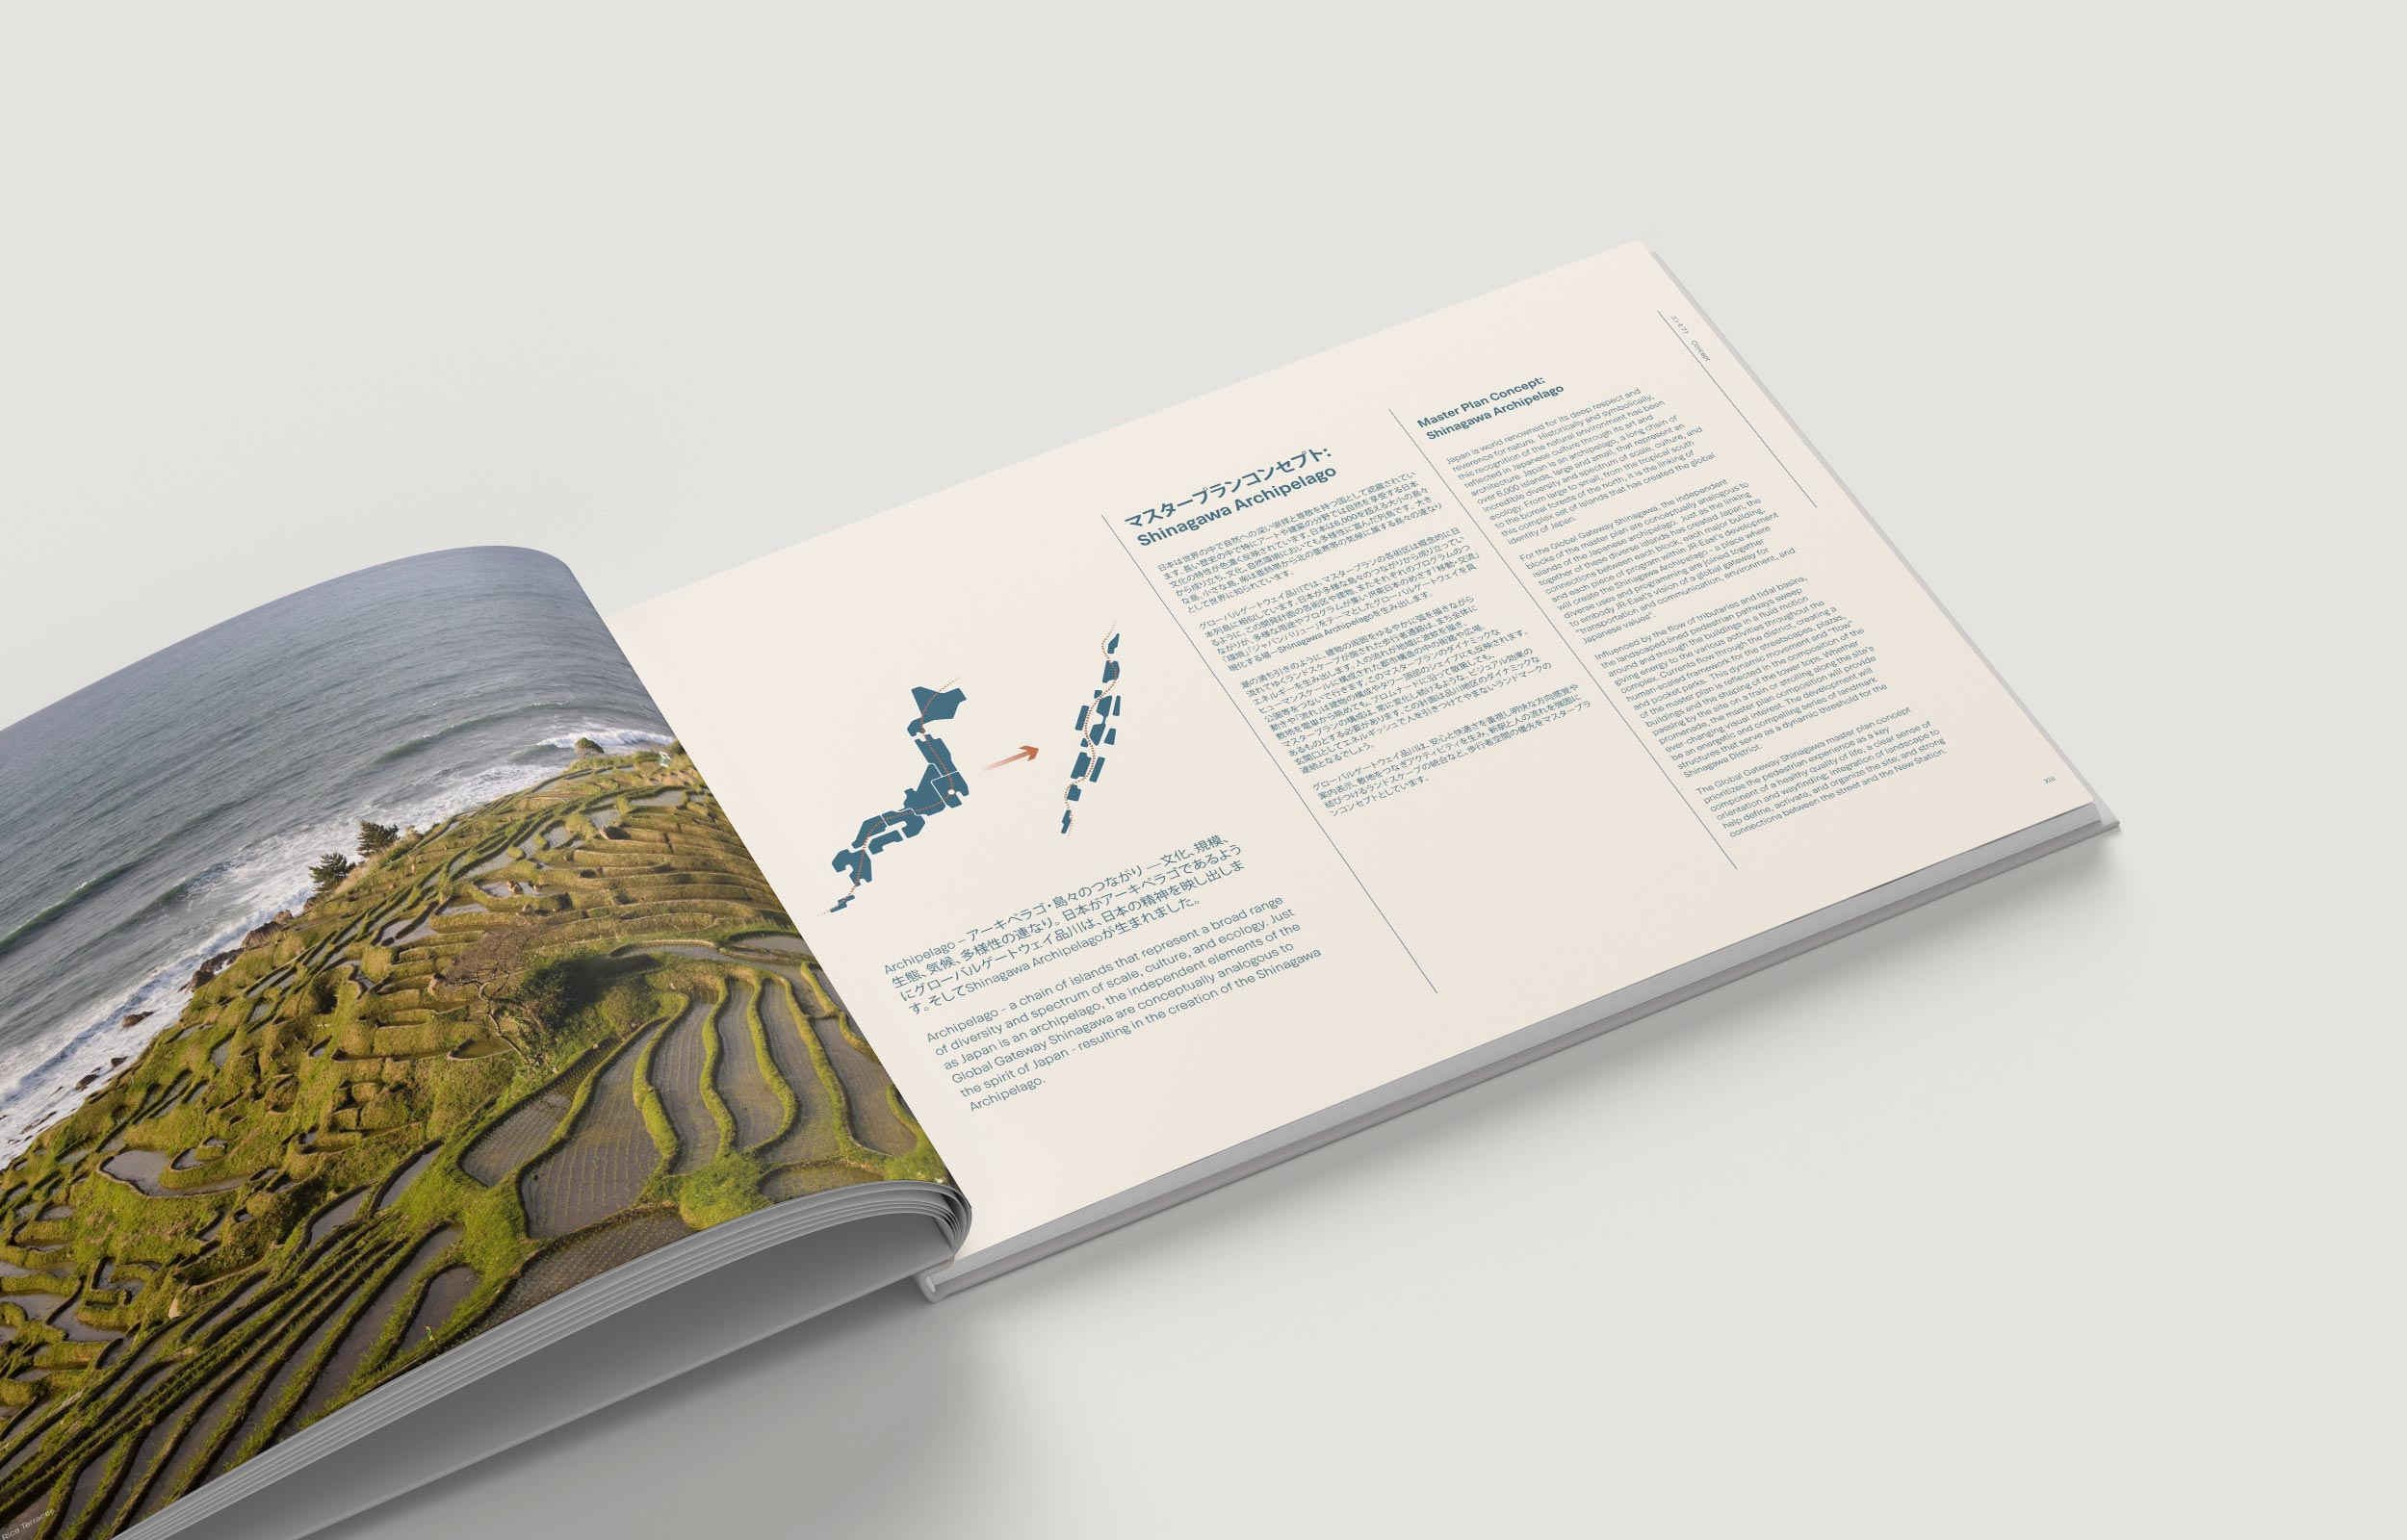 Open book with an image of the Senmaida Rice Terraces on the left page, and a conceptual plan digram with text on the right.